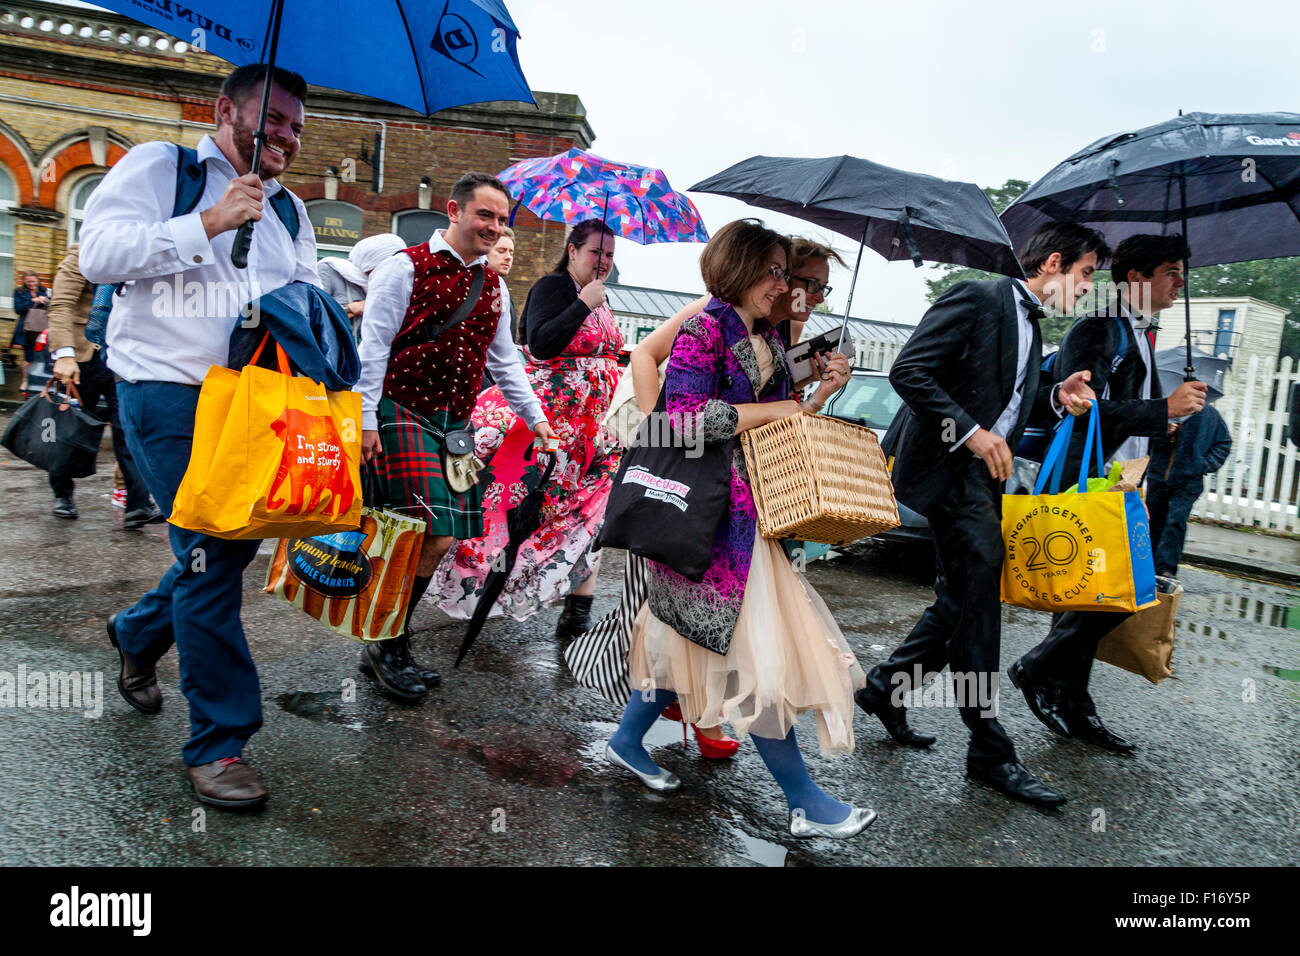 Young Opera Fans Arrive In The Pouring Rain At Lewes Station En Route To Glyndebourne Opera House, Lewes, Sussex, - Stock Image